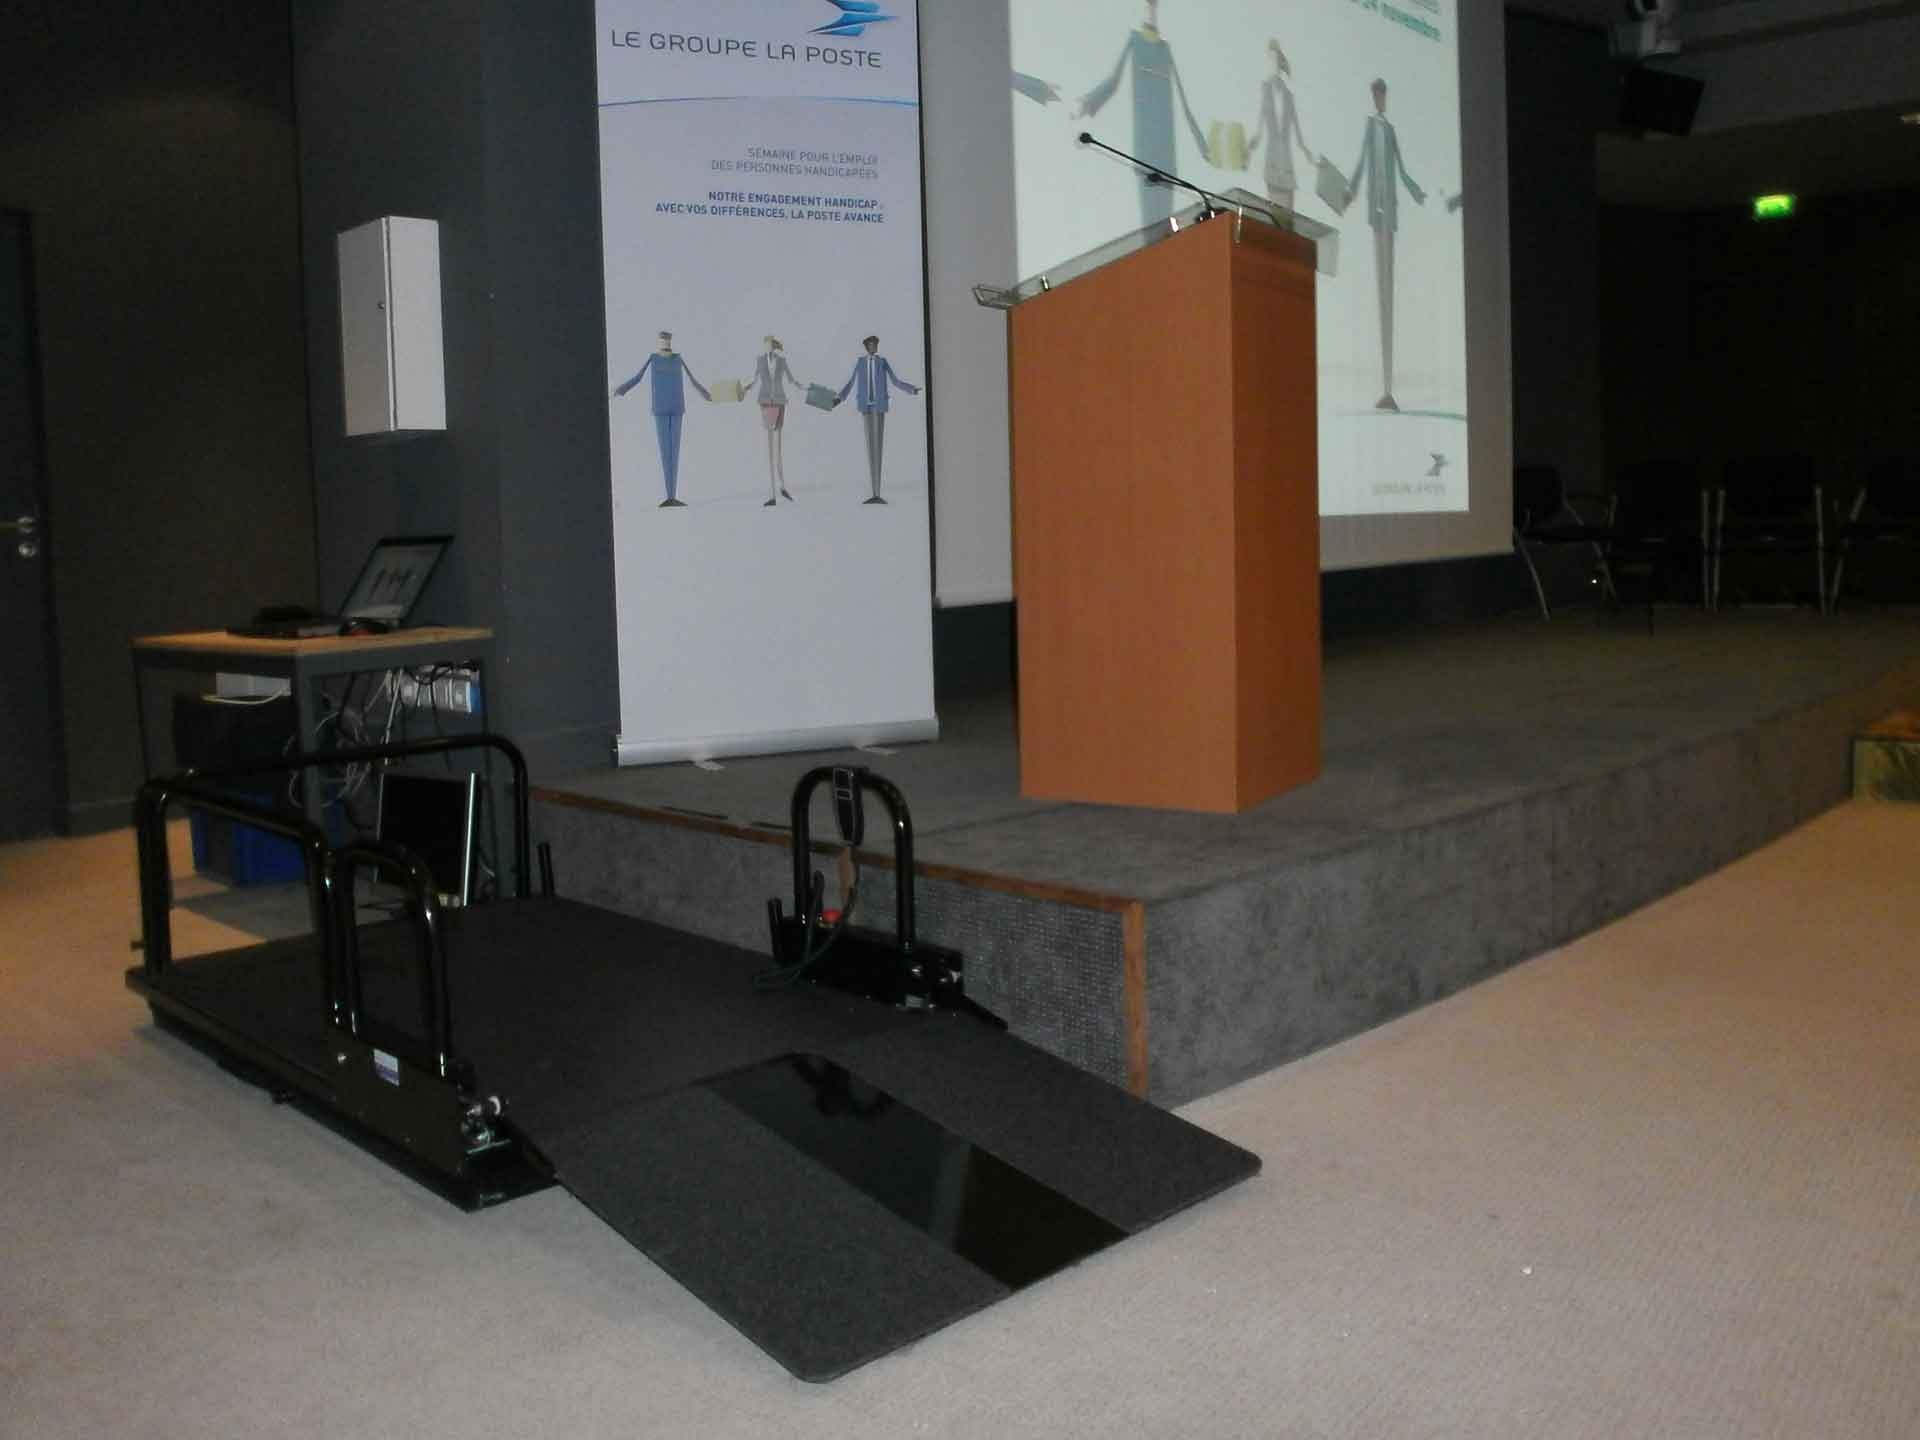 Hire an electric elevator platform for the disabled and the handicapped, ideal for events, trade shows, seminars, shows.